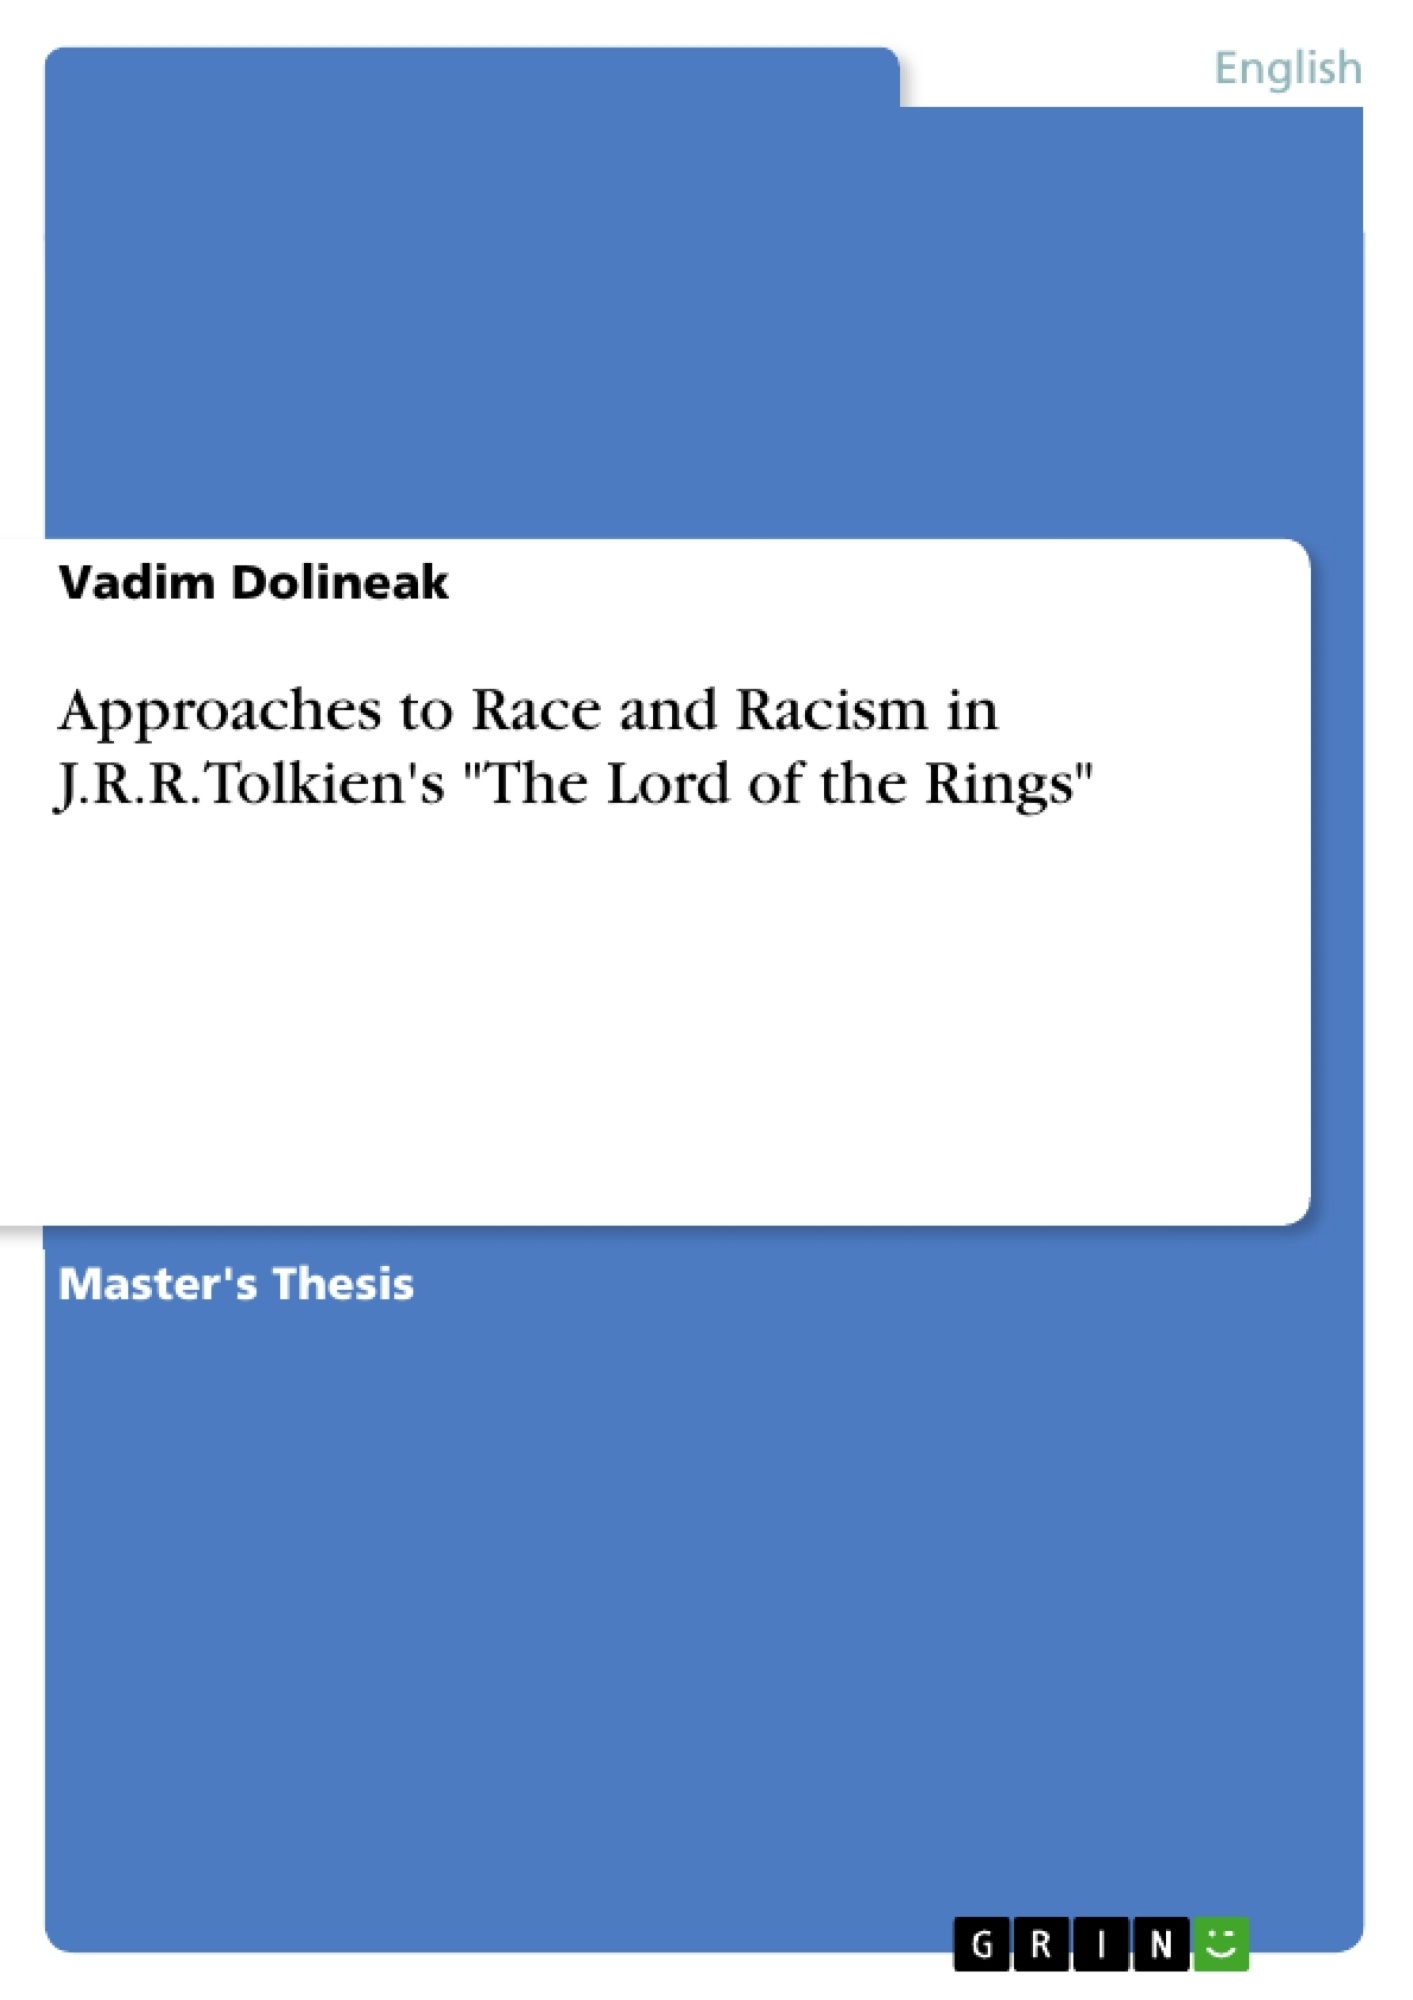 """Title: Approaches to Race and Racism in J.R.R.Tolkien's """"The Lord of the Rings"""""""